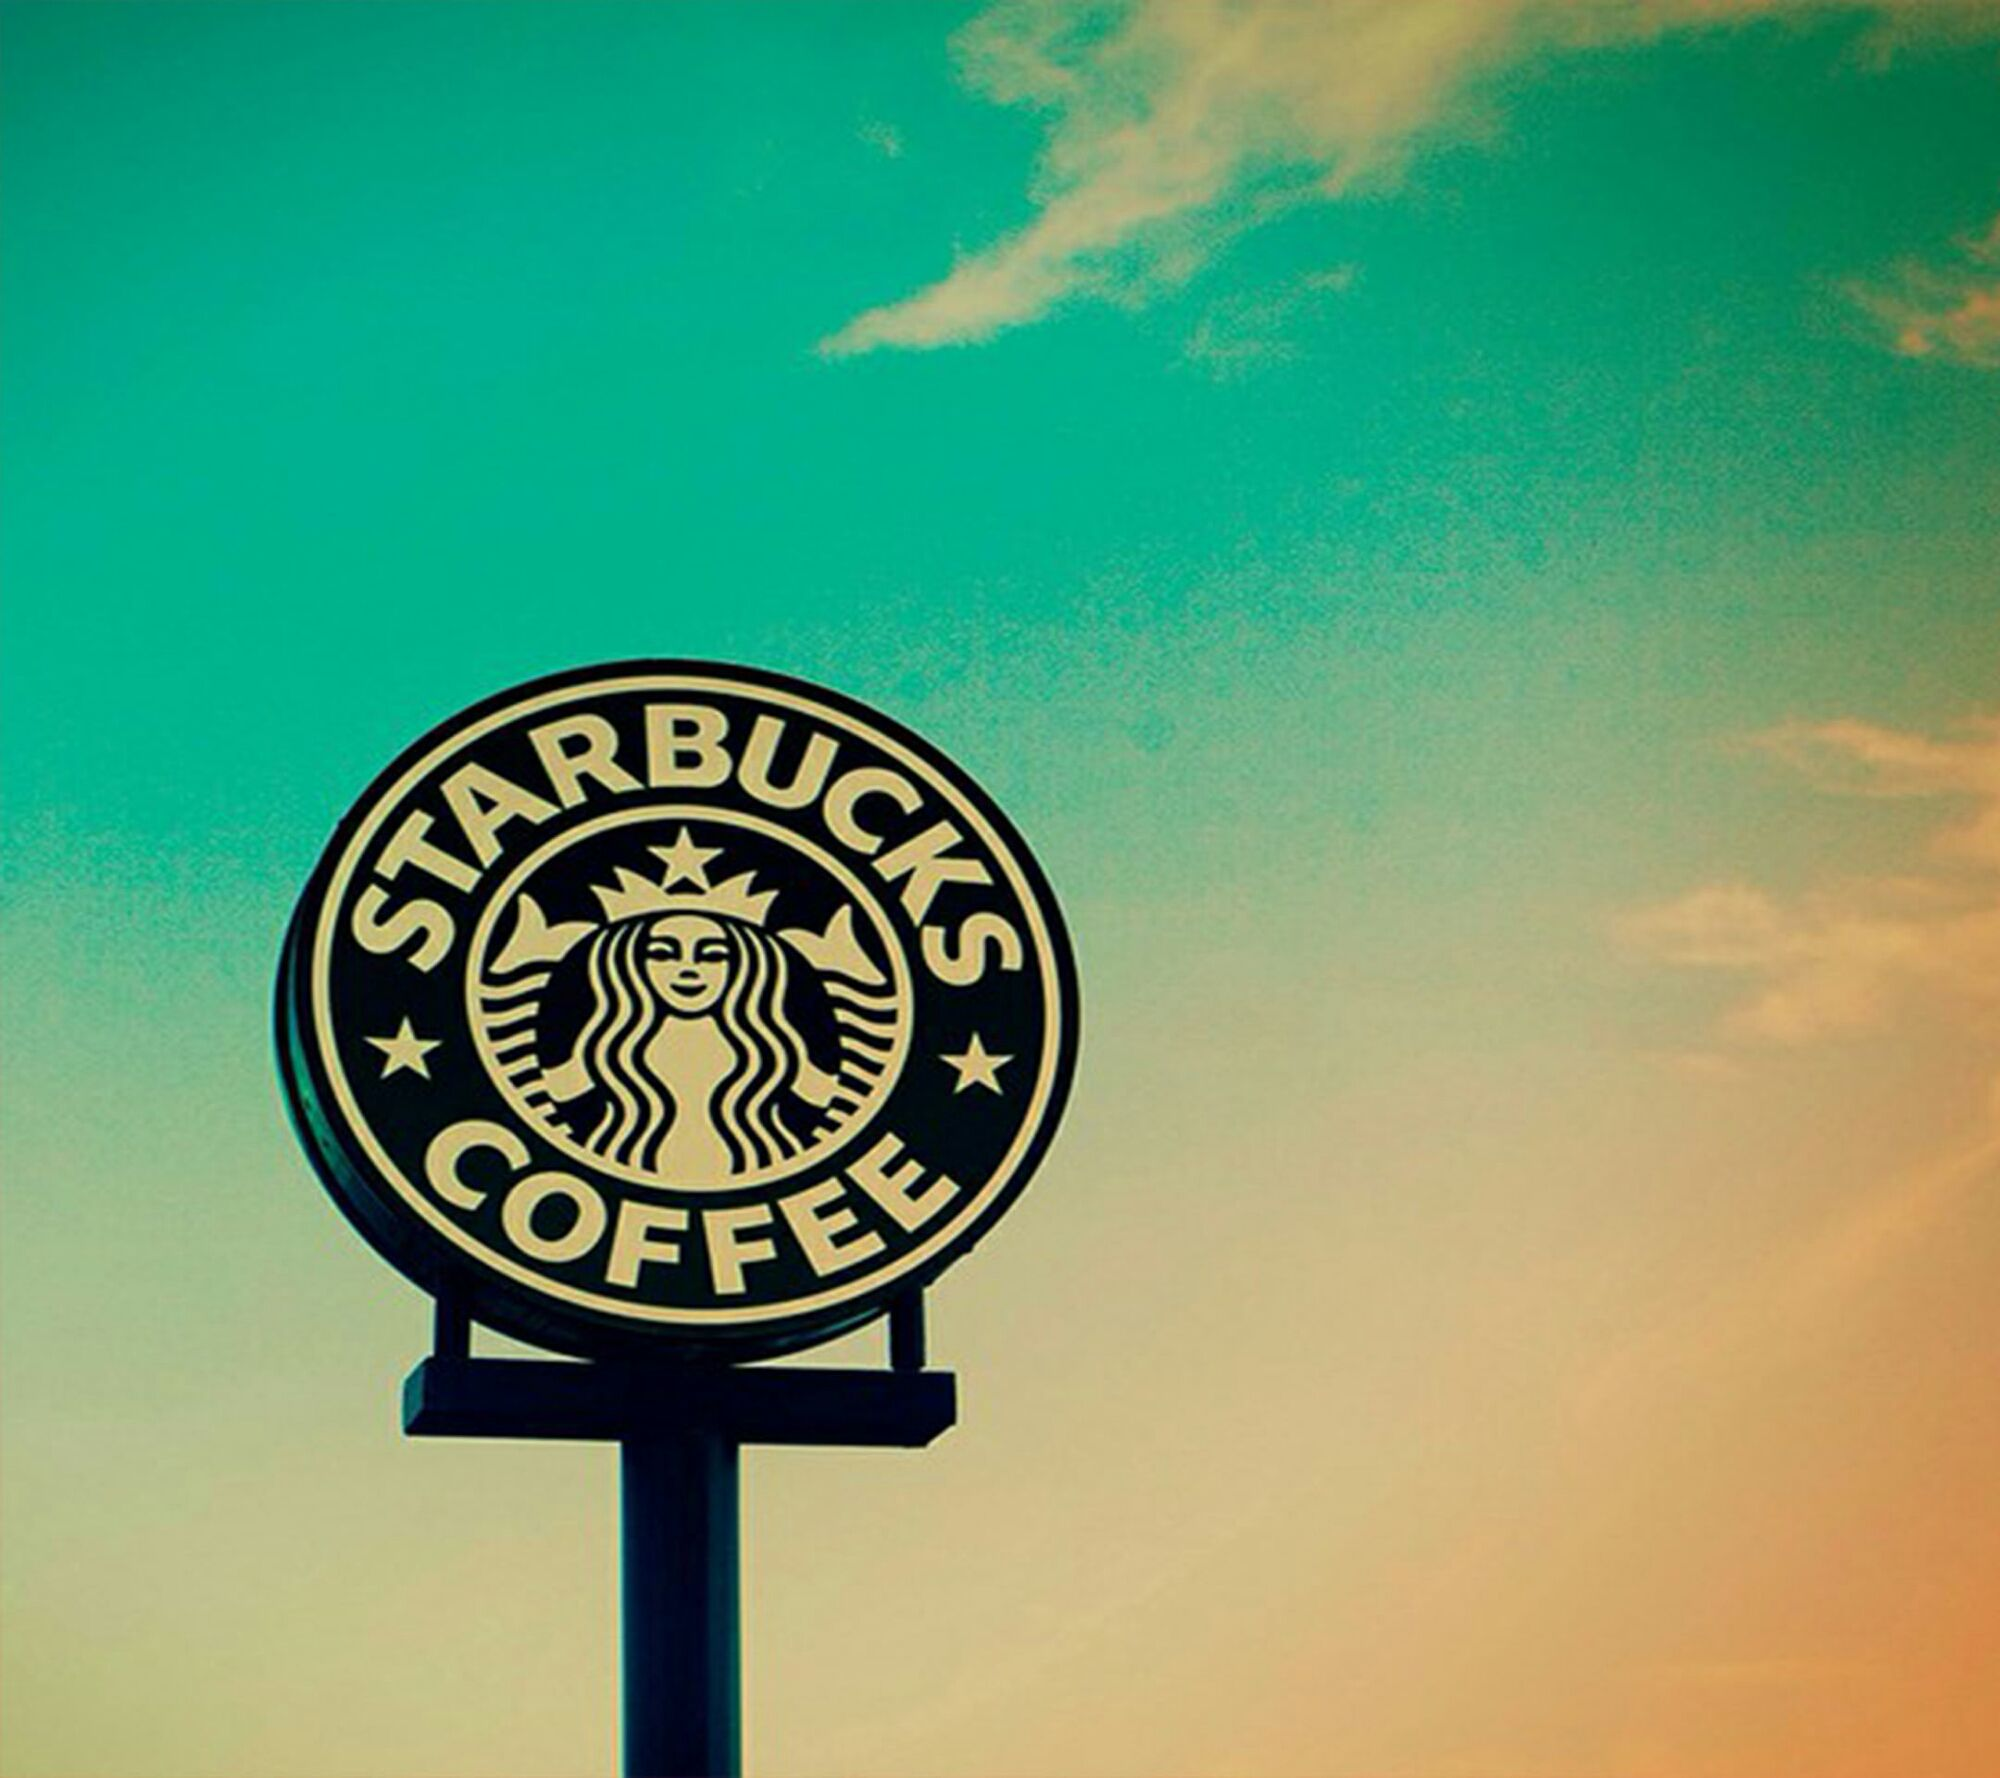 918 Cute Starbucks Wallpaper Tumblr Starbucks Wallpaper Starbucks Background Starbucks Fall